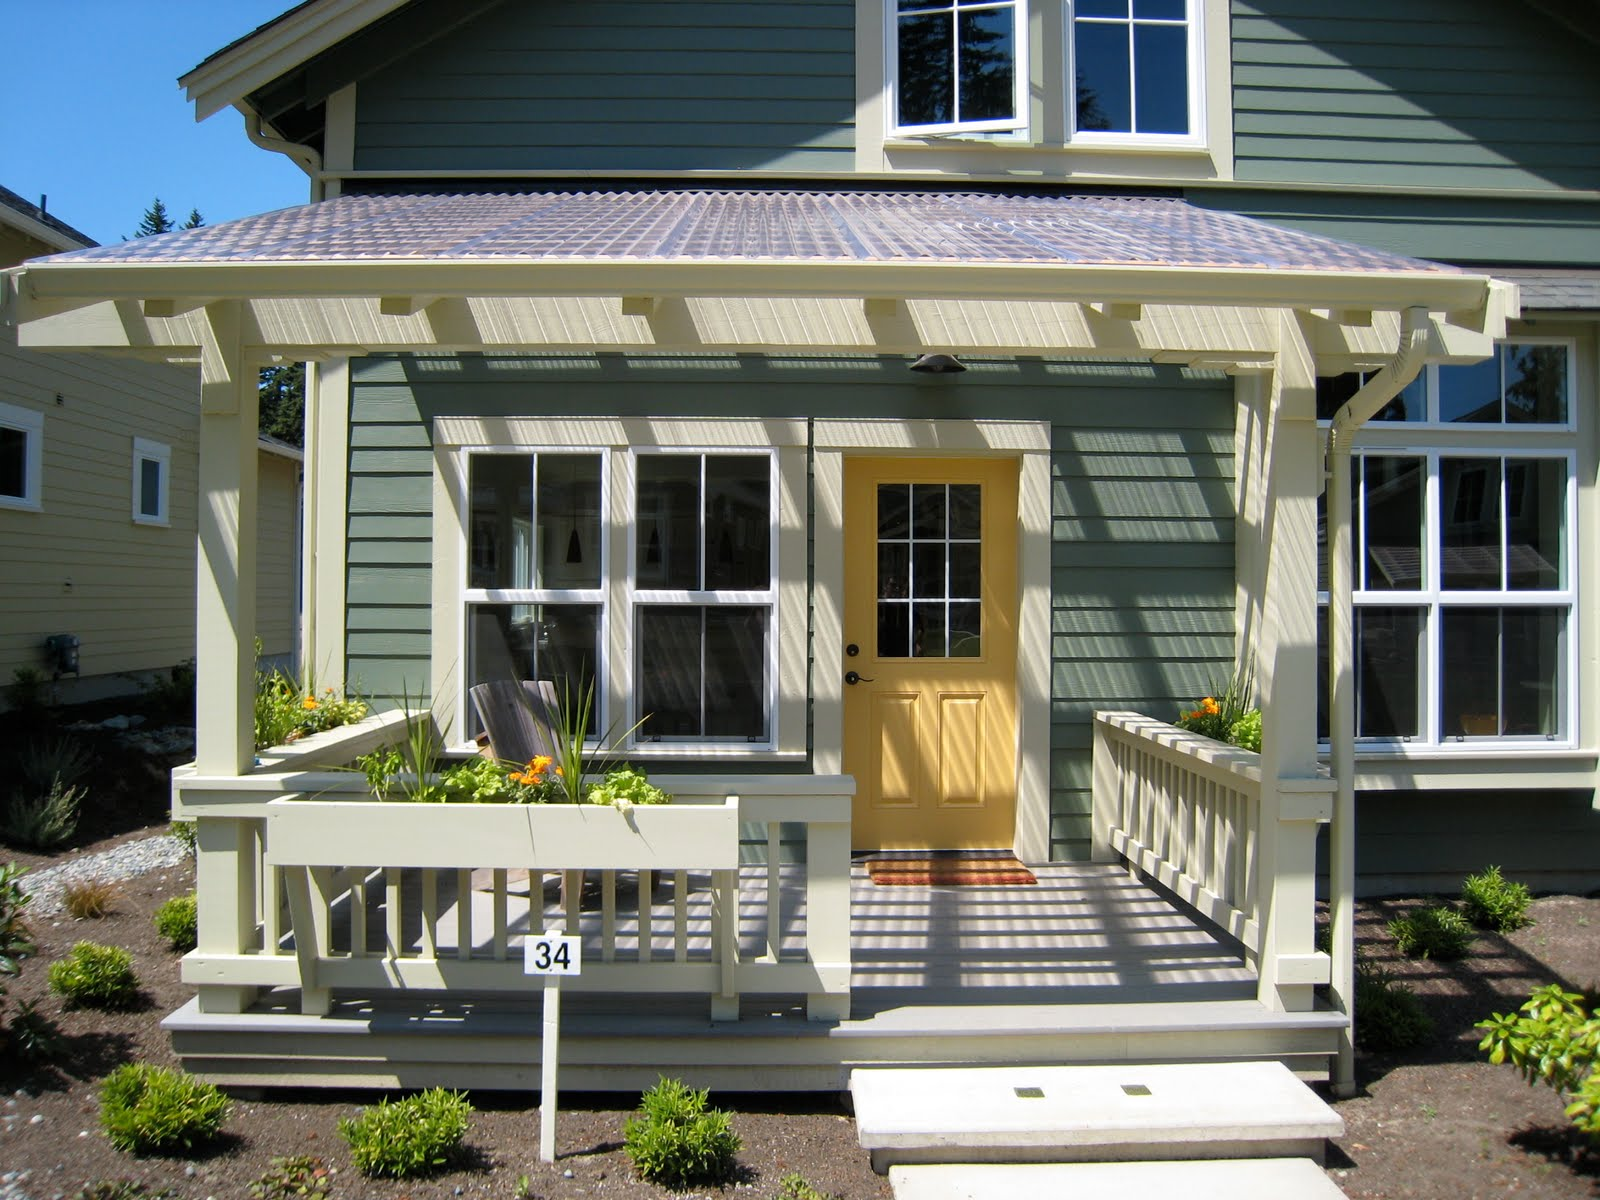 Details of home front porch inspiration ross chapin for House with a porch